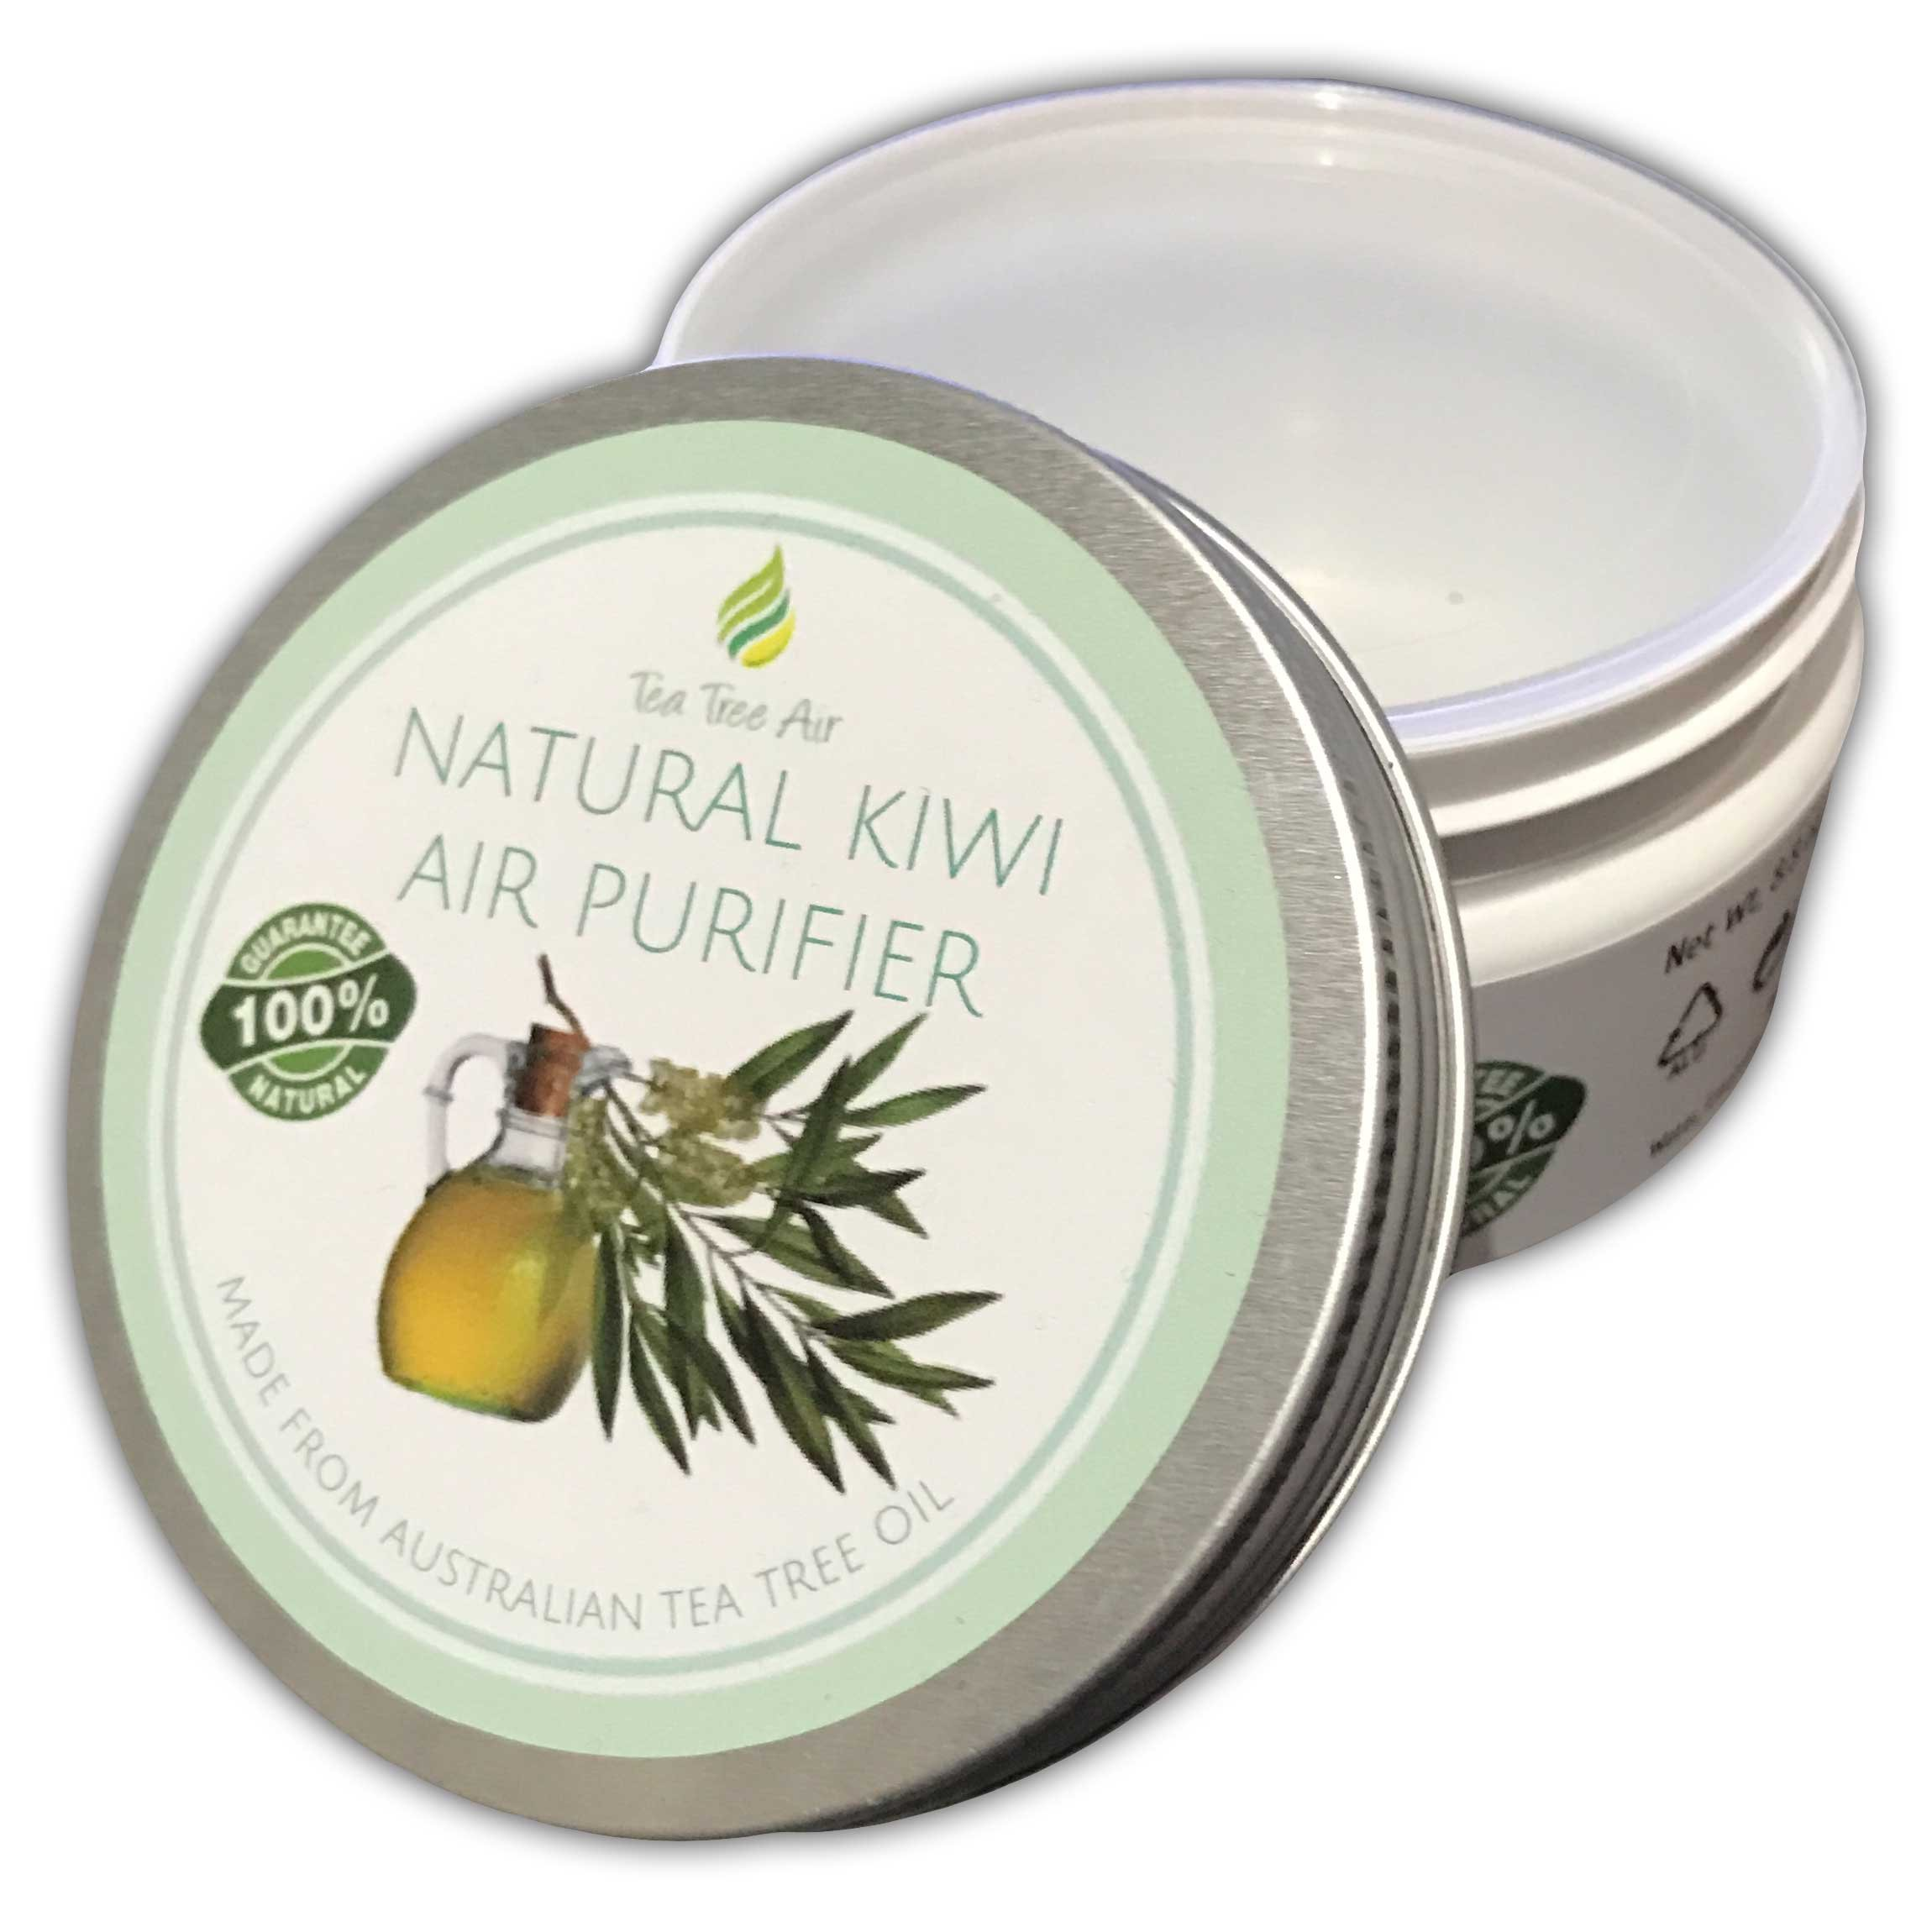 Tea Tree Air Purifier Natural KIWI ✔ Natural Air Purifier Cream, Kills Mold, Attacks Mildew, Air Freshener, Air Conditioner - Perfect for kitchen, bathroom or car! - $13.95 ✔ (2.2 oz)